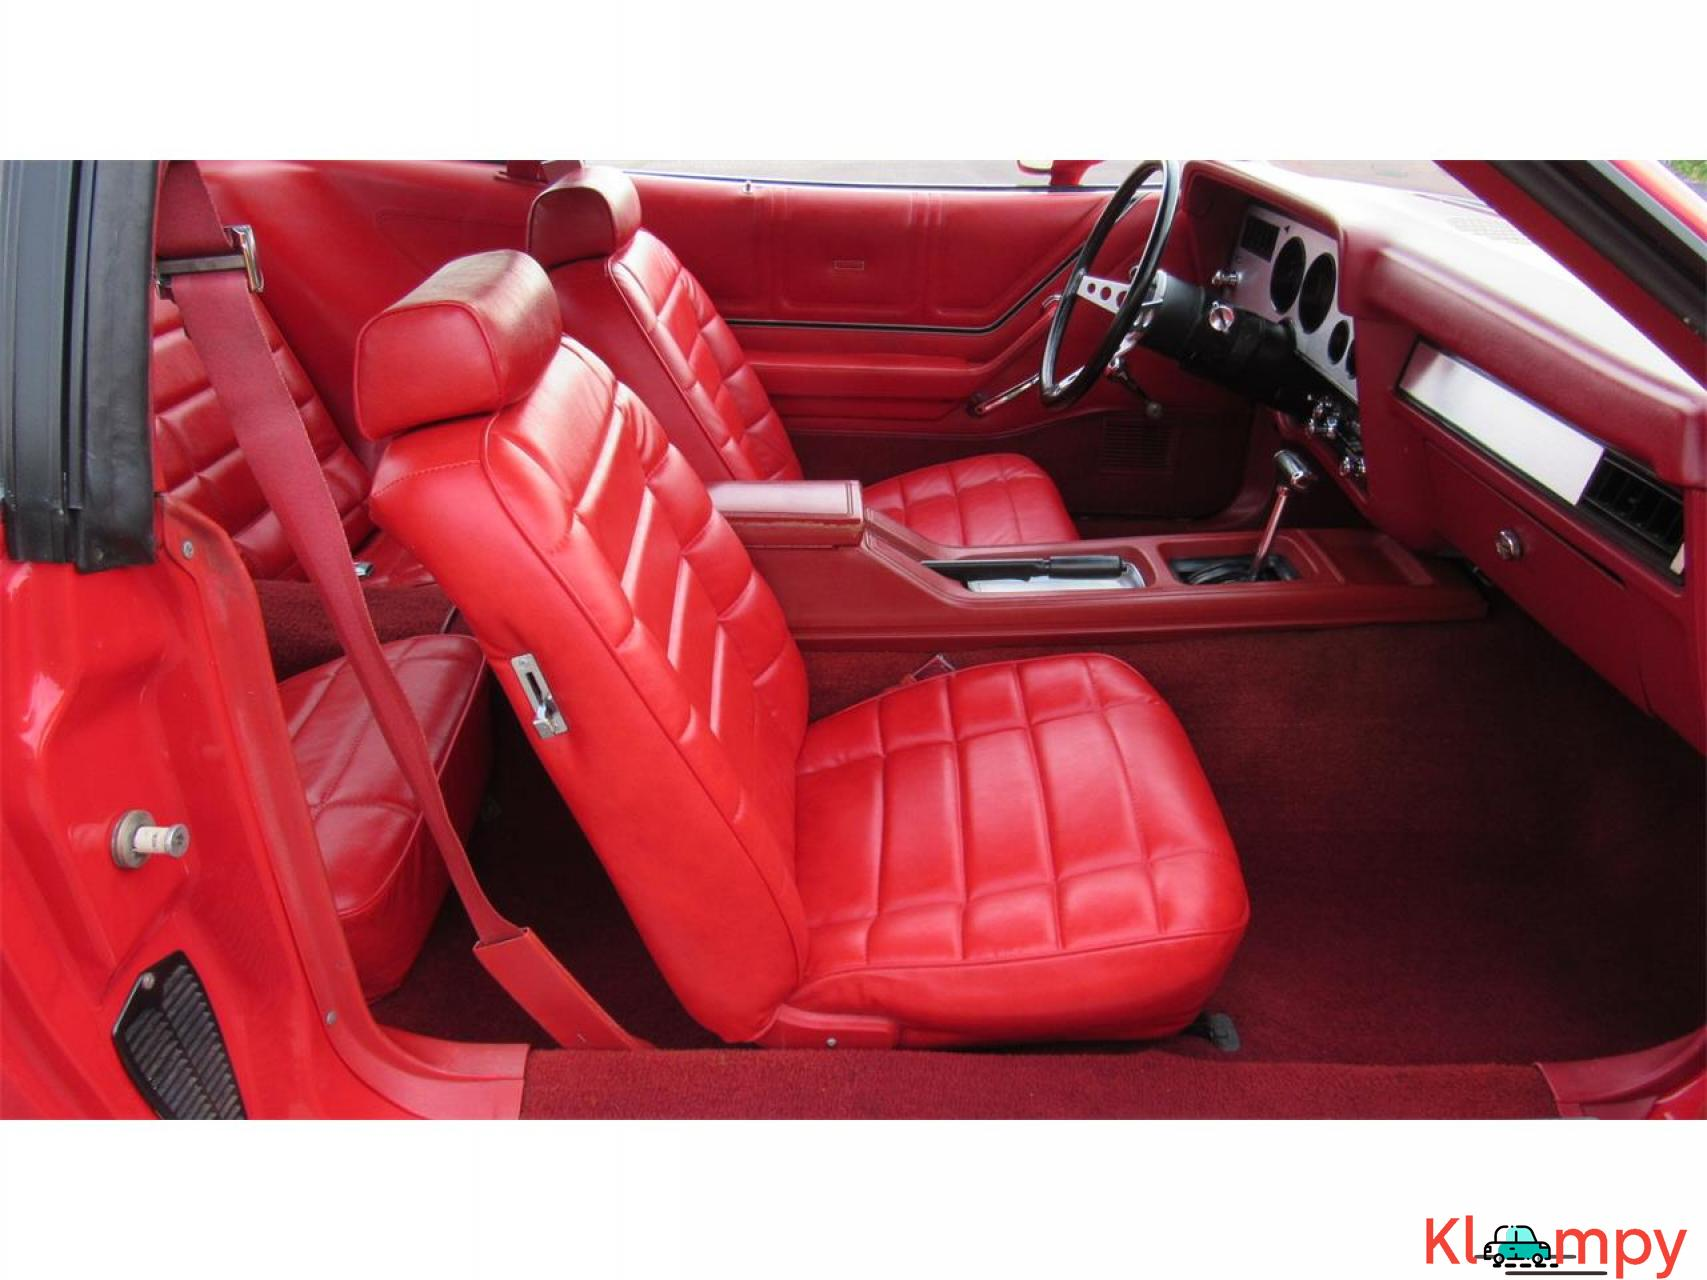 1978 Ford Mustang 302ci V8 Red - 10/17